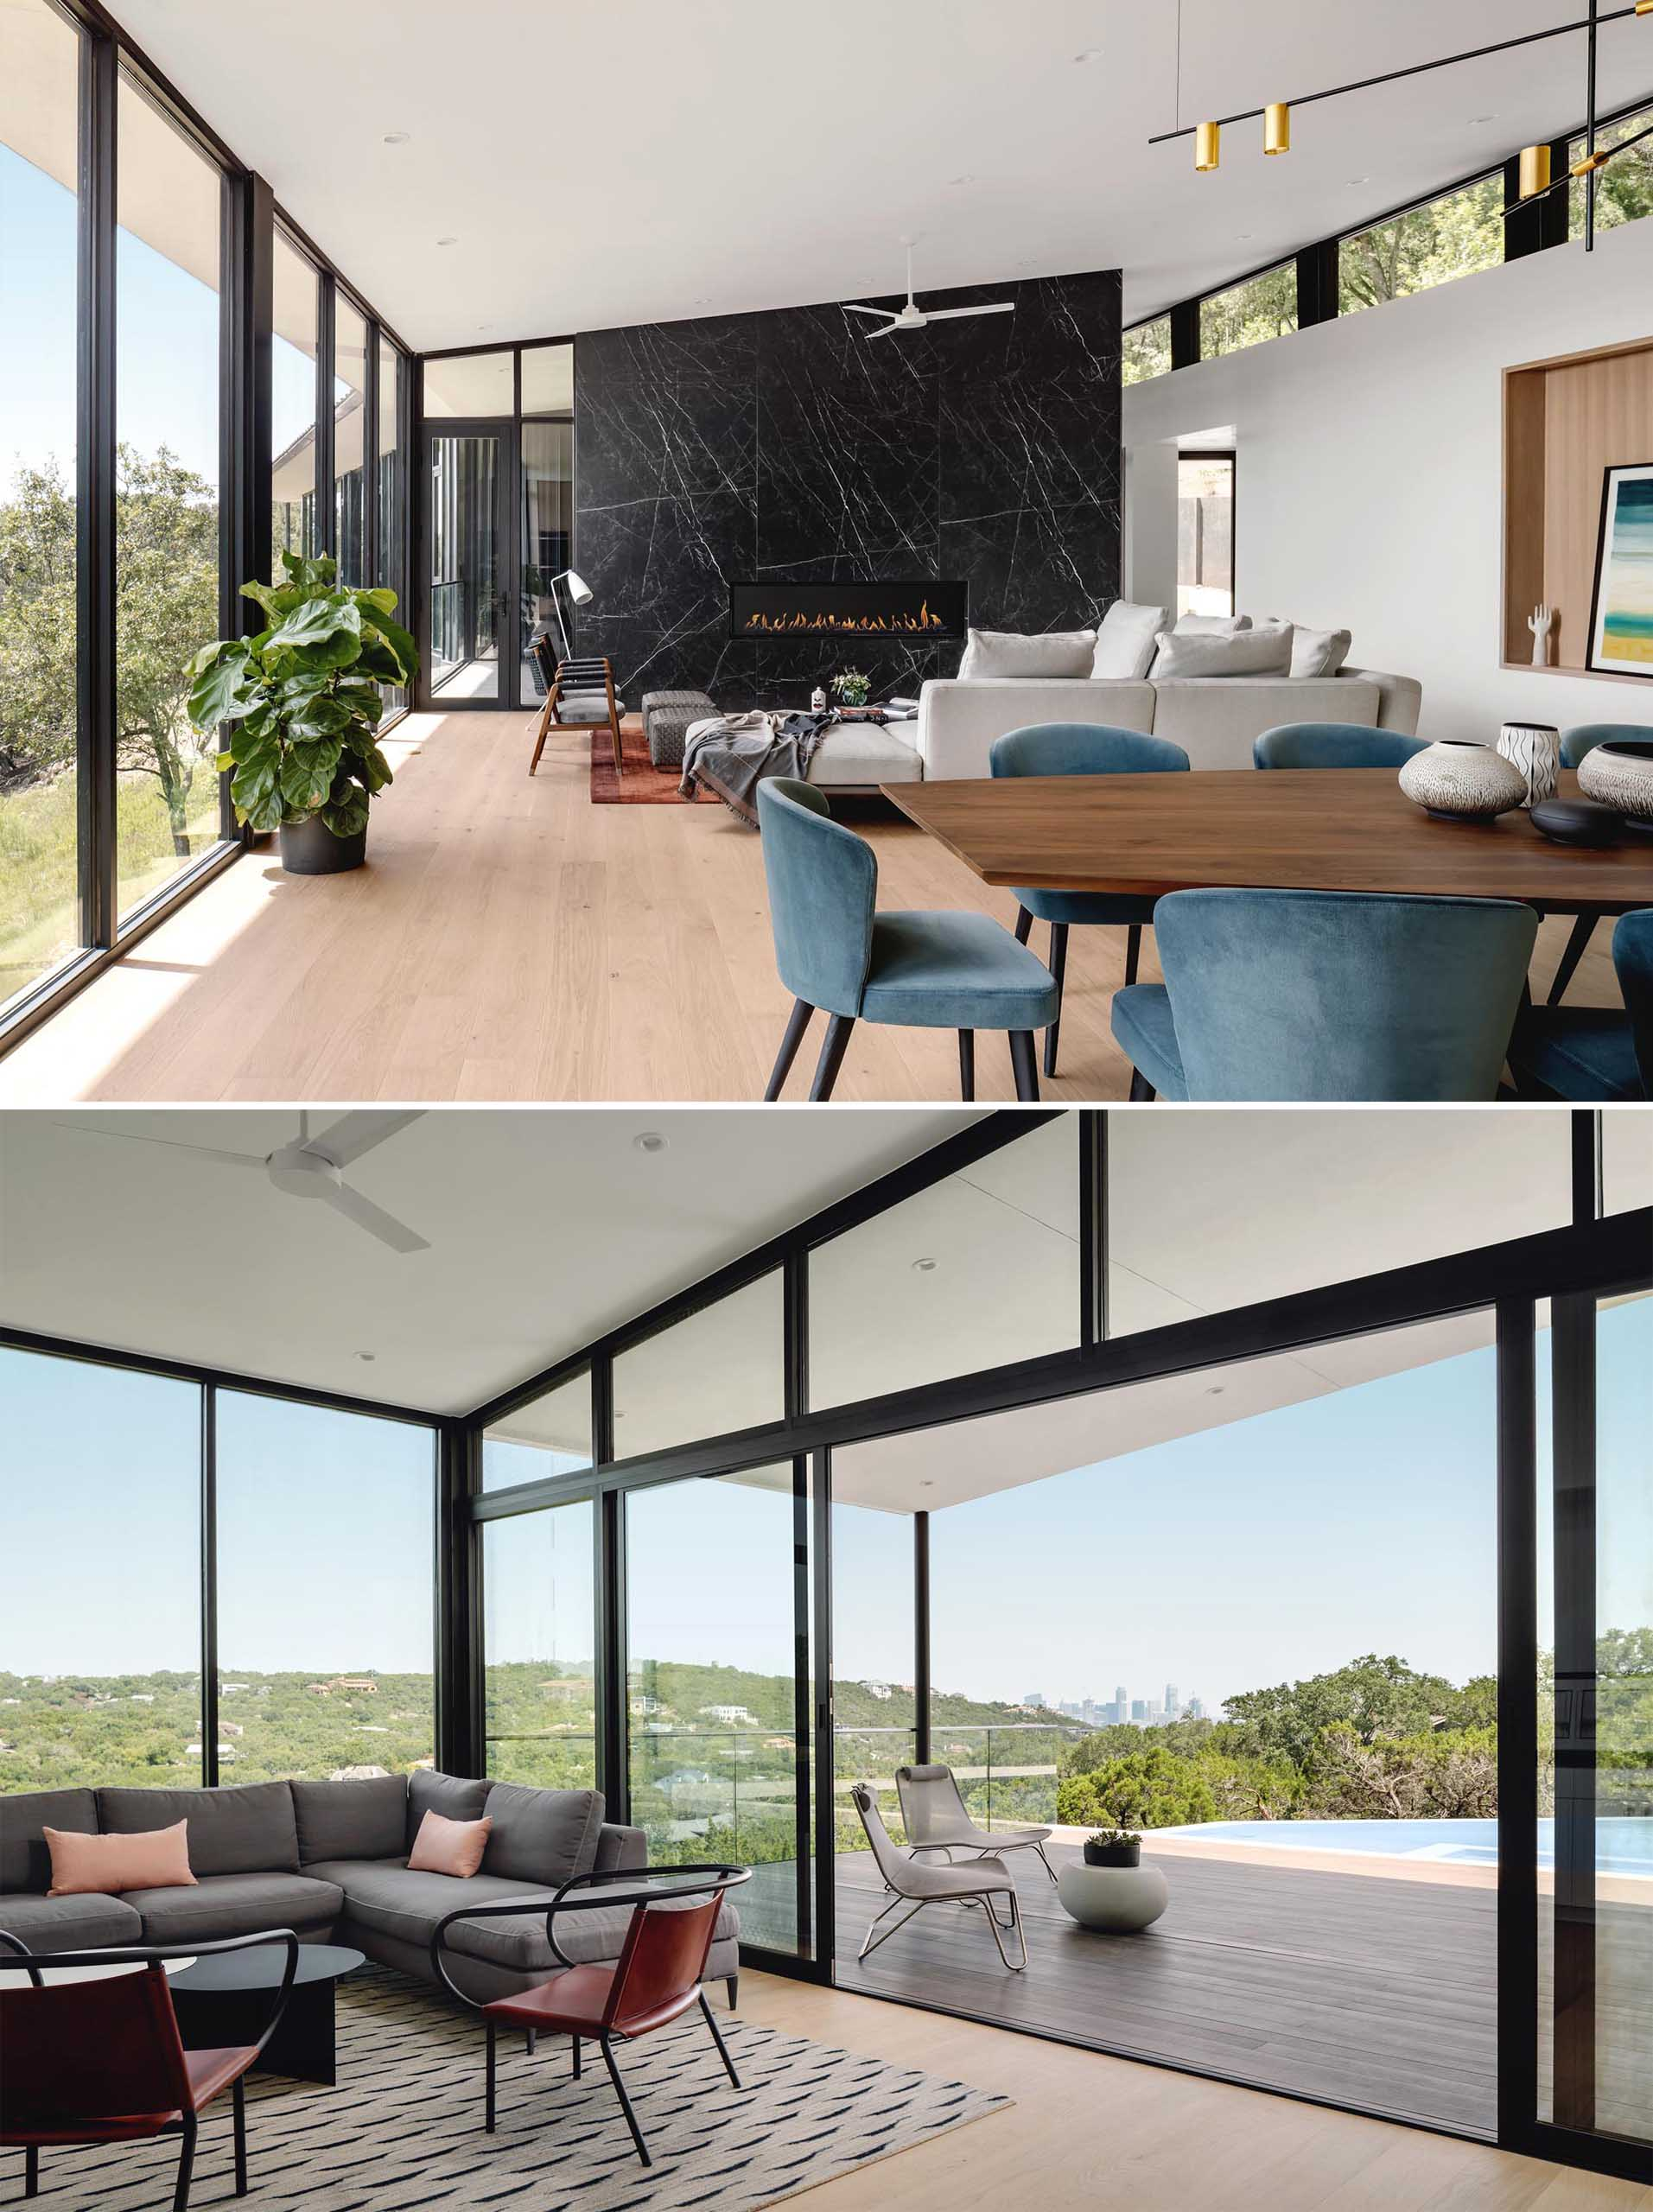 Inside this modern home, the living areas are open plan with the main living room, dining area, and kitchen all sharing the space, while a secondary living space is located by the pool and opens to a covered patio.